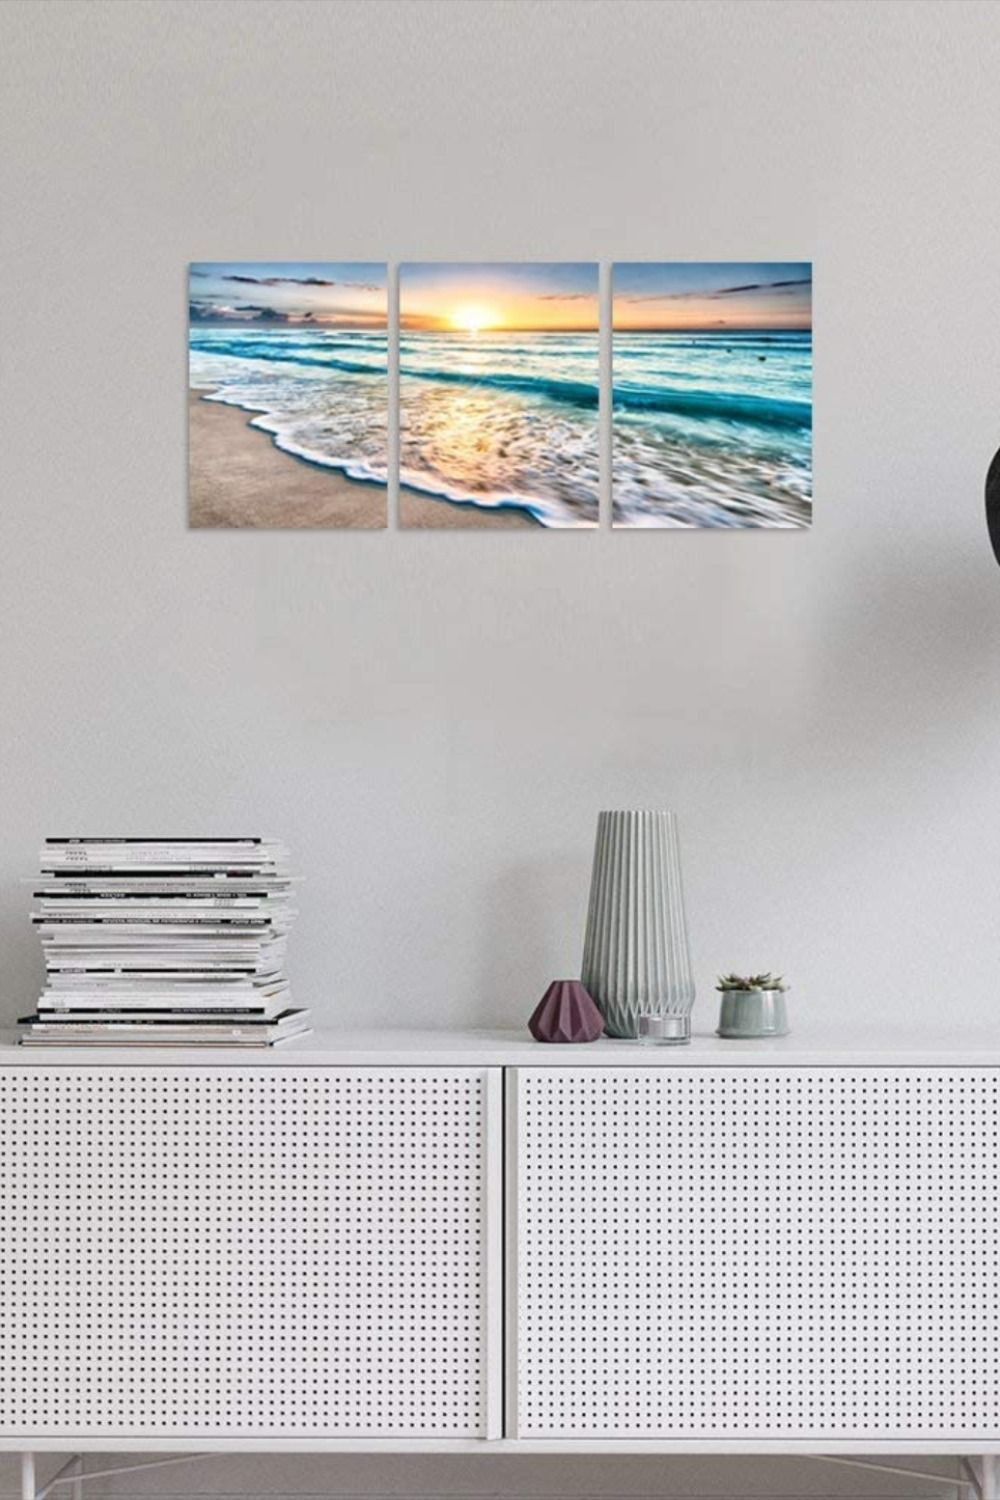 Photo of TutuBeer 3 Panel Beach Canvas Wall Art for Home Decor